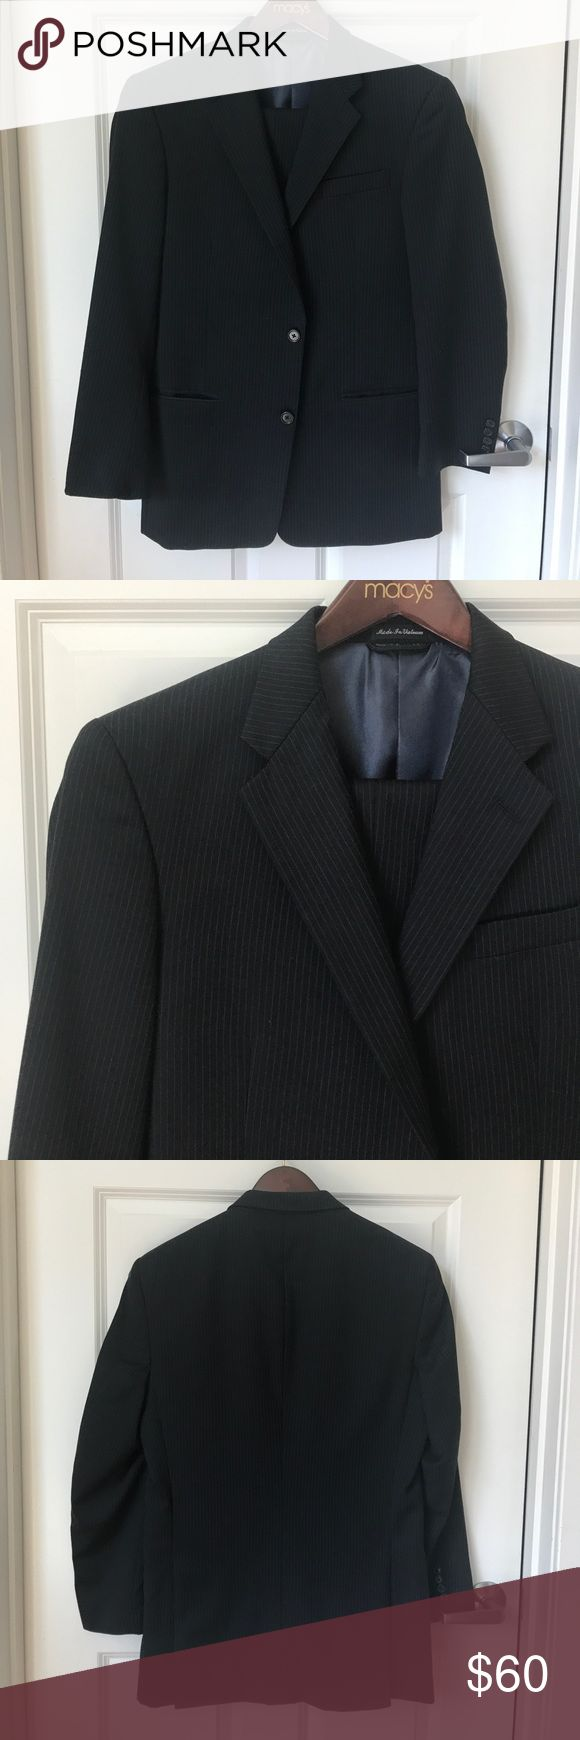 {PIERRE CARDIN} Navy Pinstriped Suit 100% Wool suit with polyester lining. Jacket is size 38R with two buttons and interior and exterior pockets. Pants are size 32W x 30L. Pierre Cardin Suits & Blazers Suits